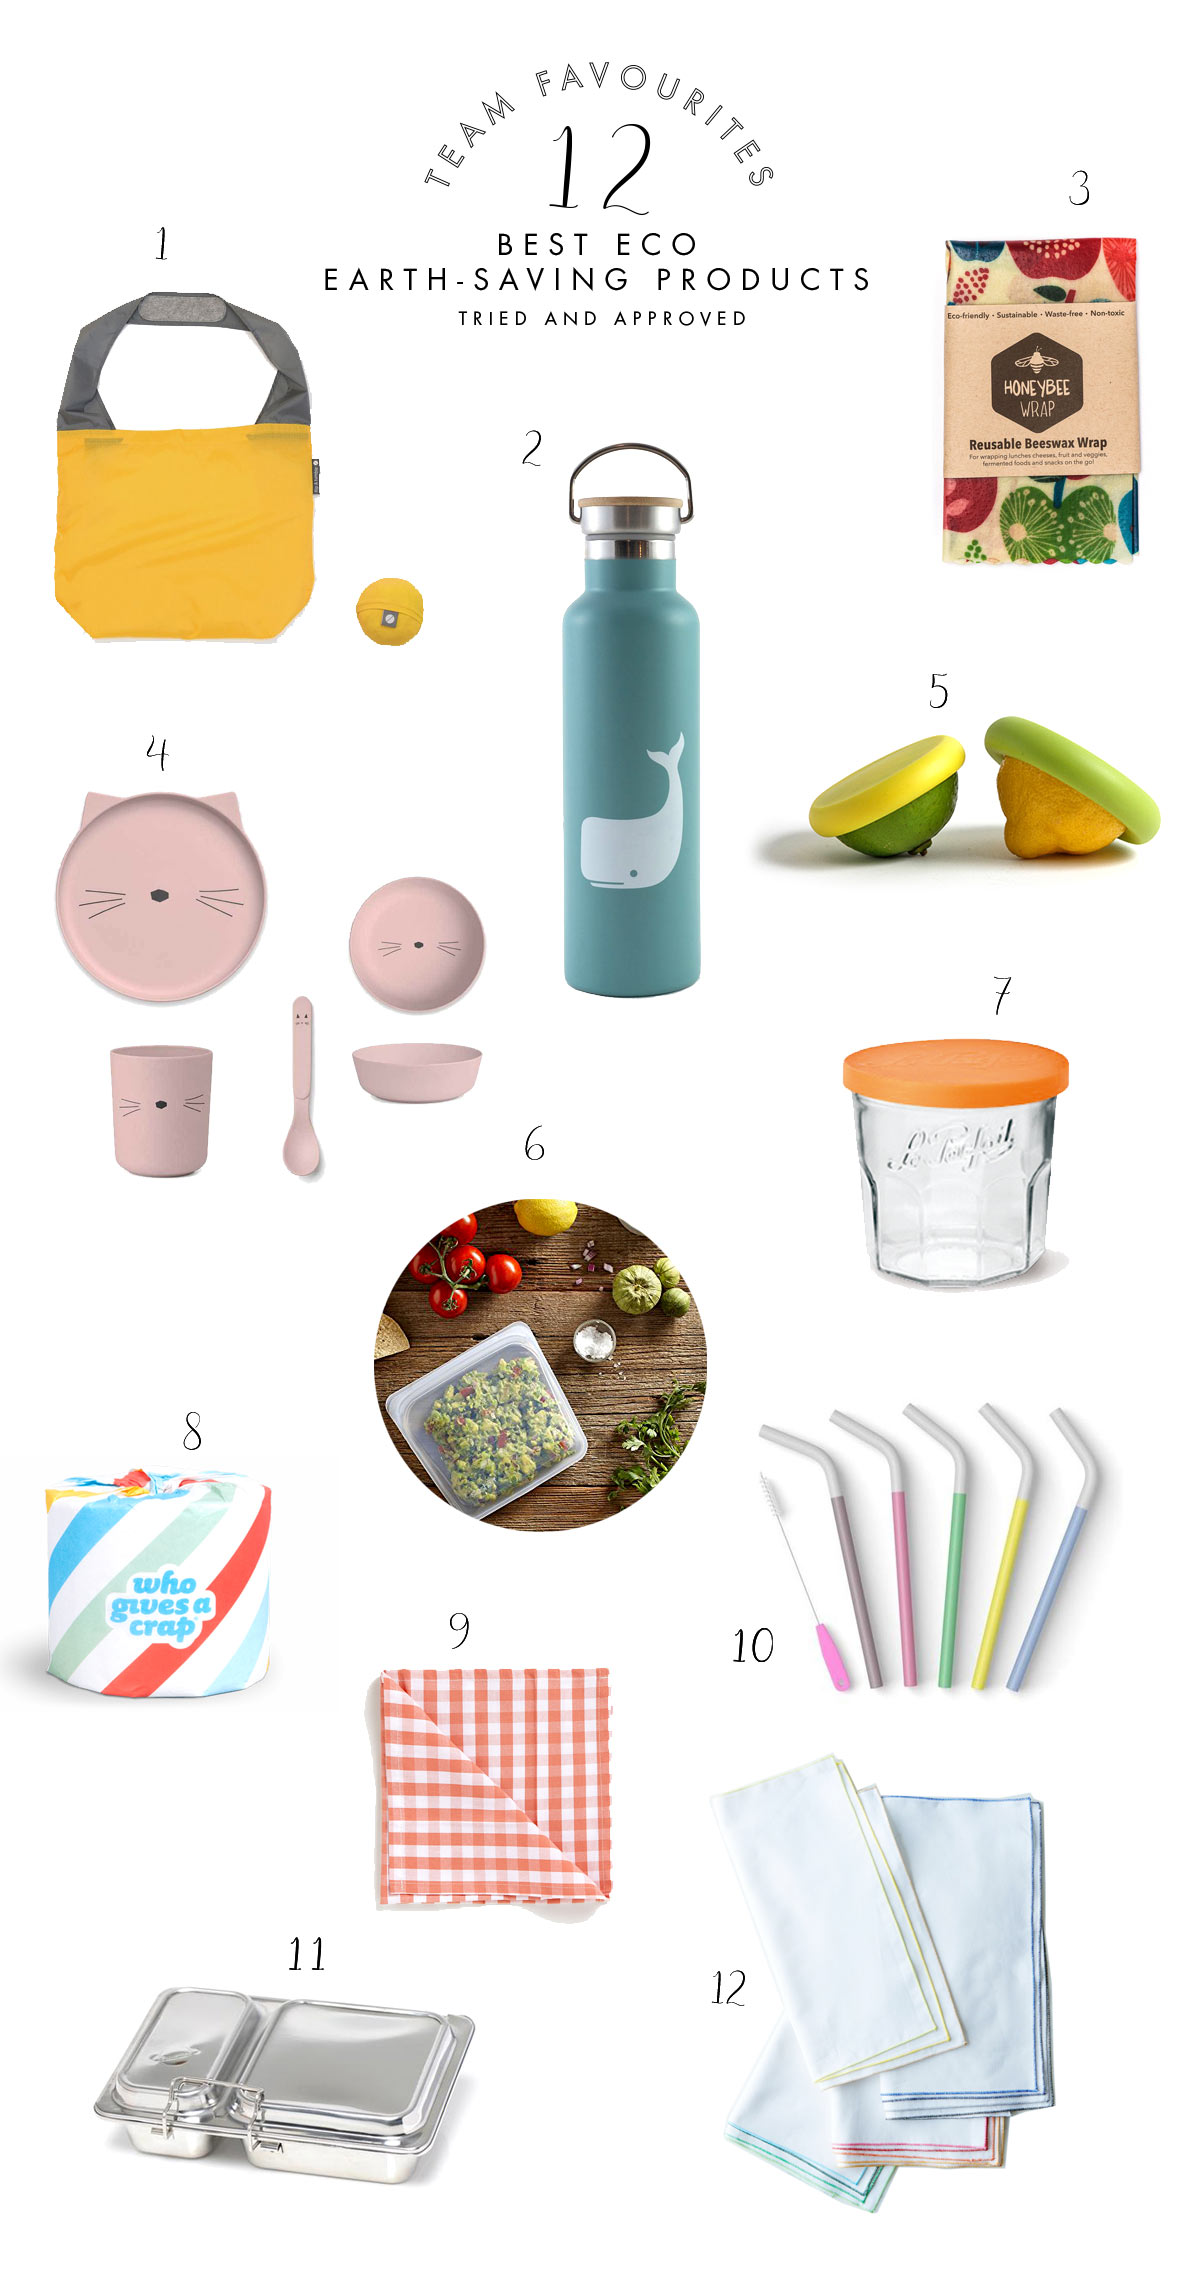 2a19e0f8e59 The best eco earth-saving products from the Babyccino team Babyccino ...